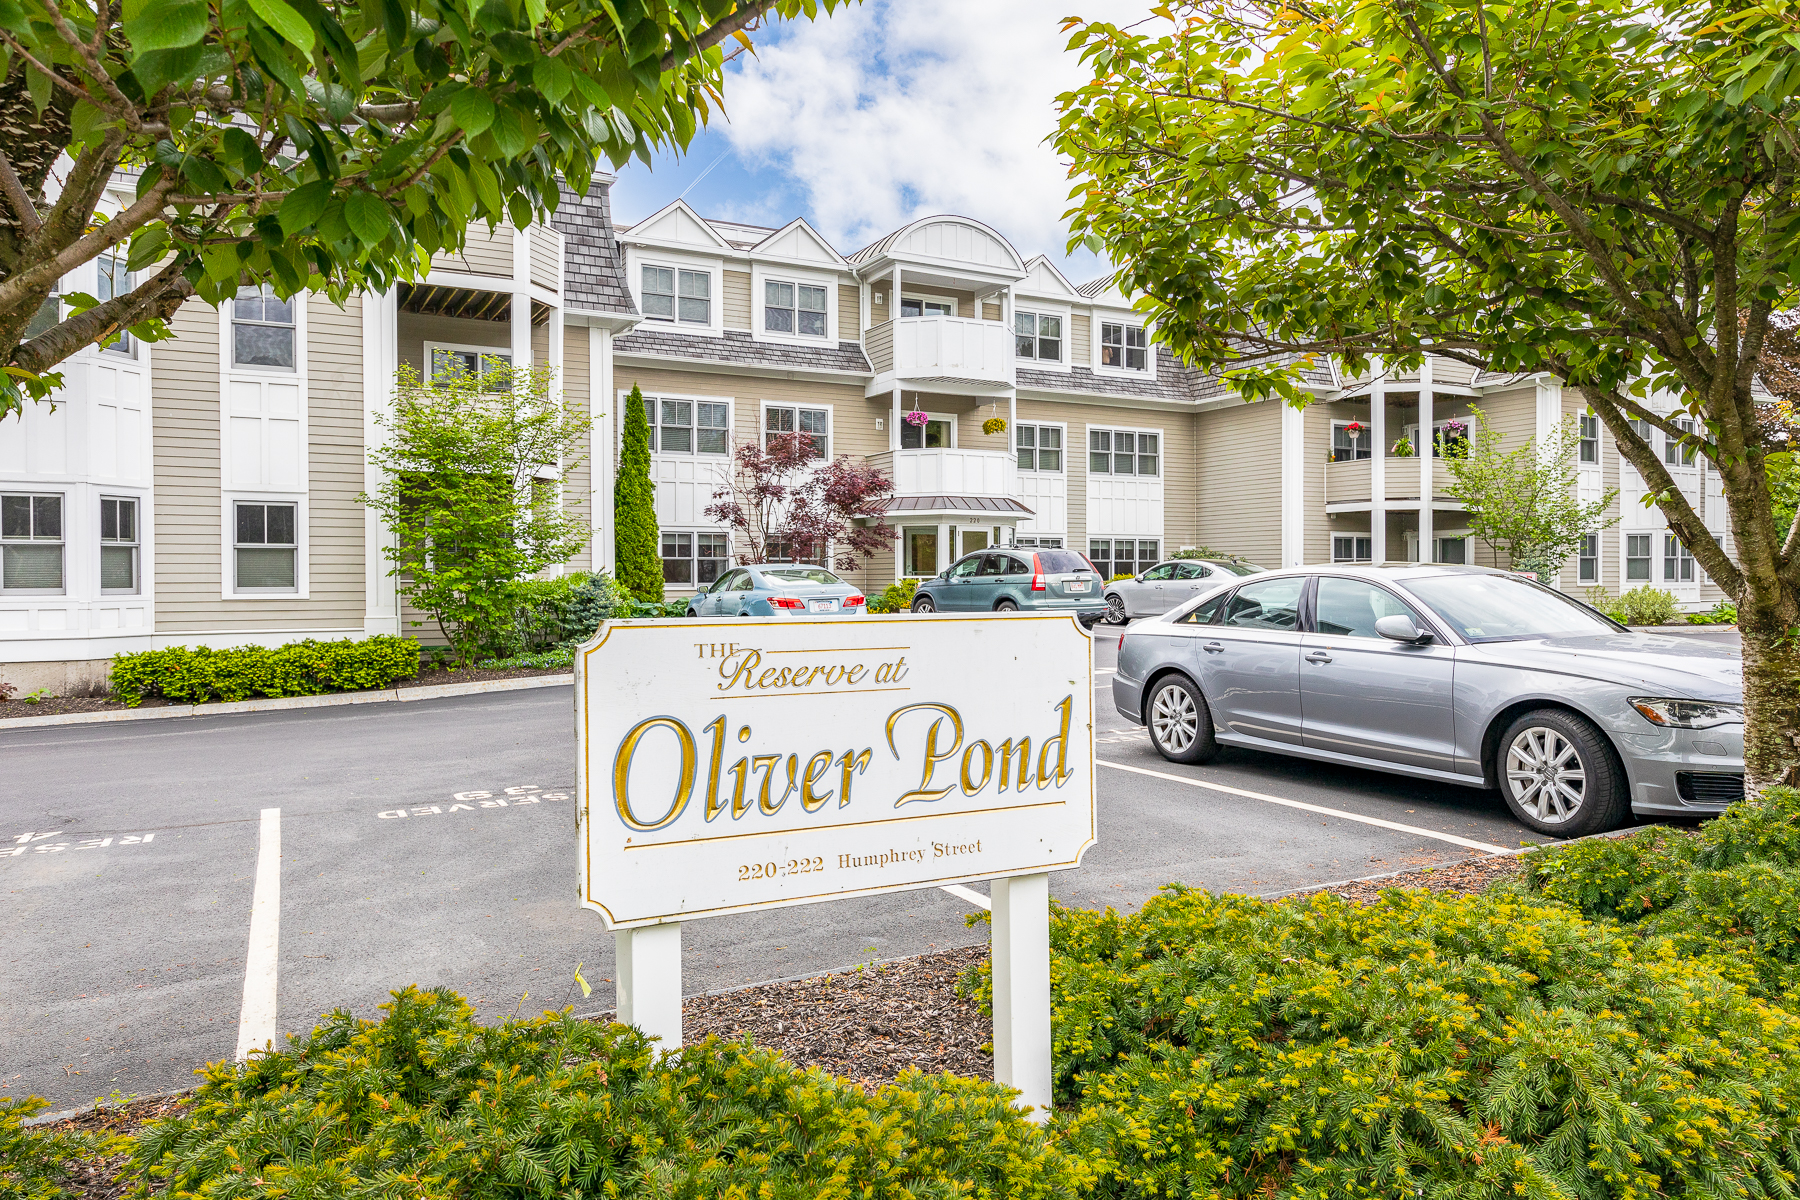 Condominiums for Sale at The Reserve at Oliver Pond 220 Humphrey Street #207 Marblehead, Massachusetts 01945 United States